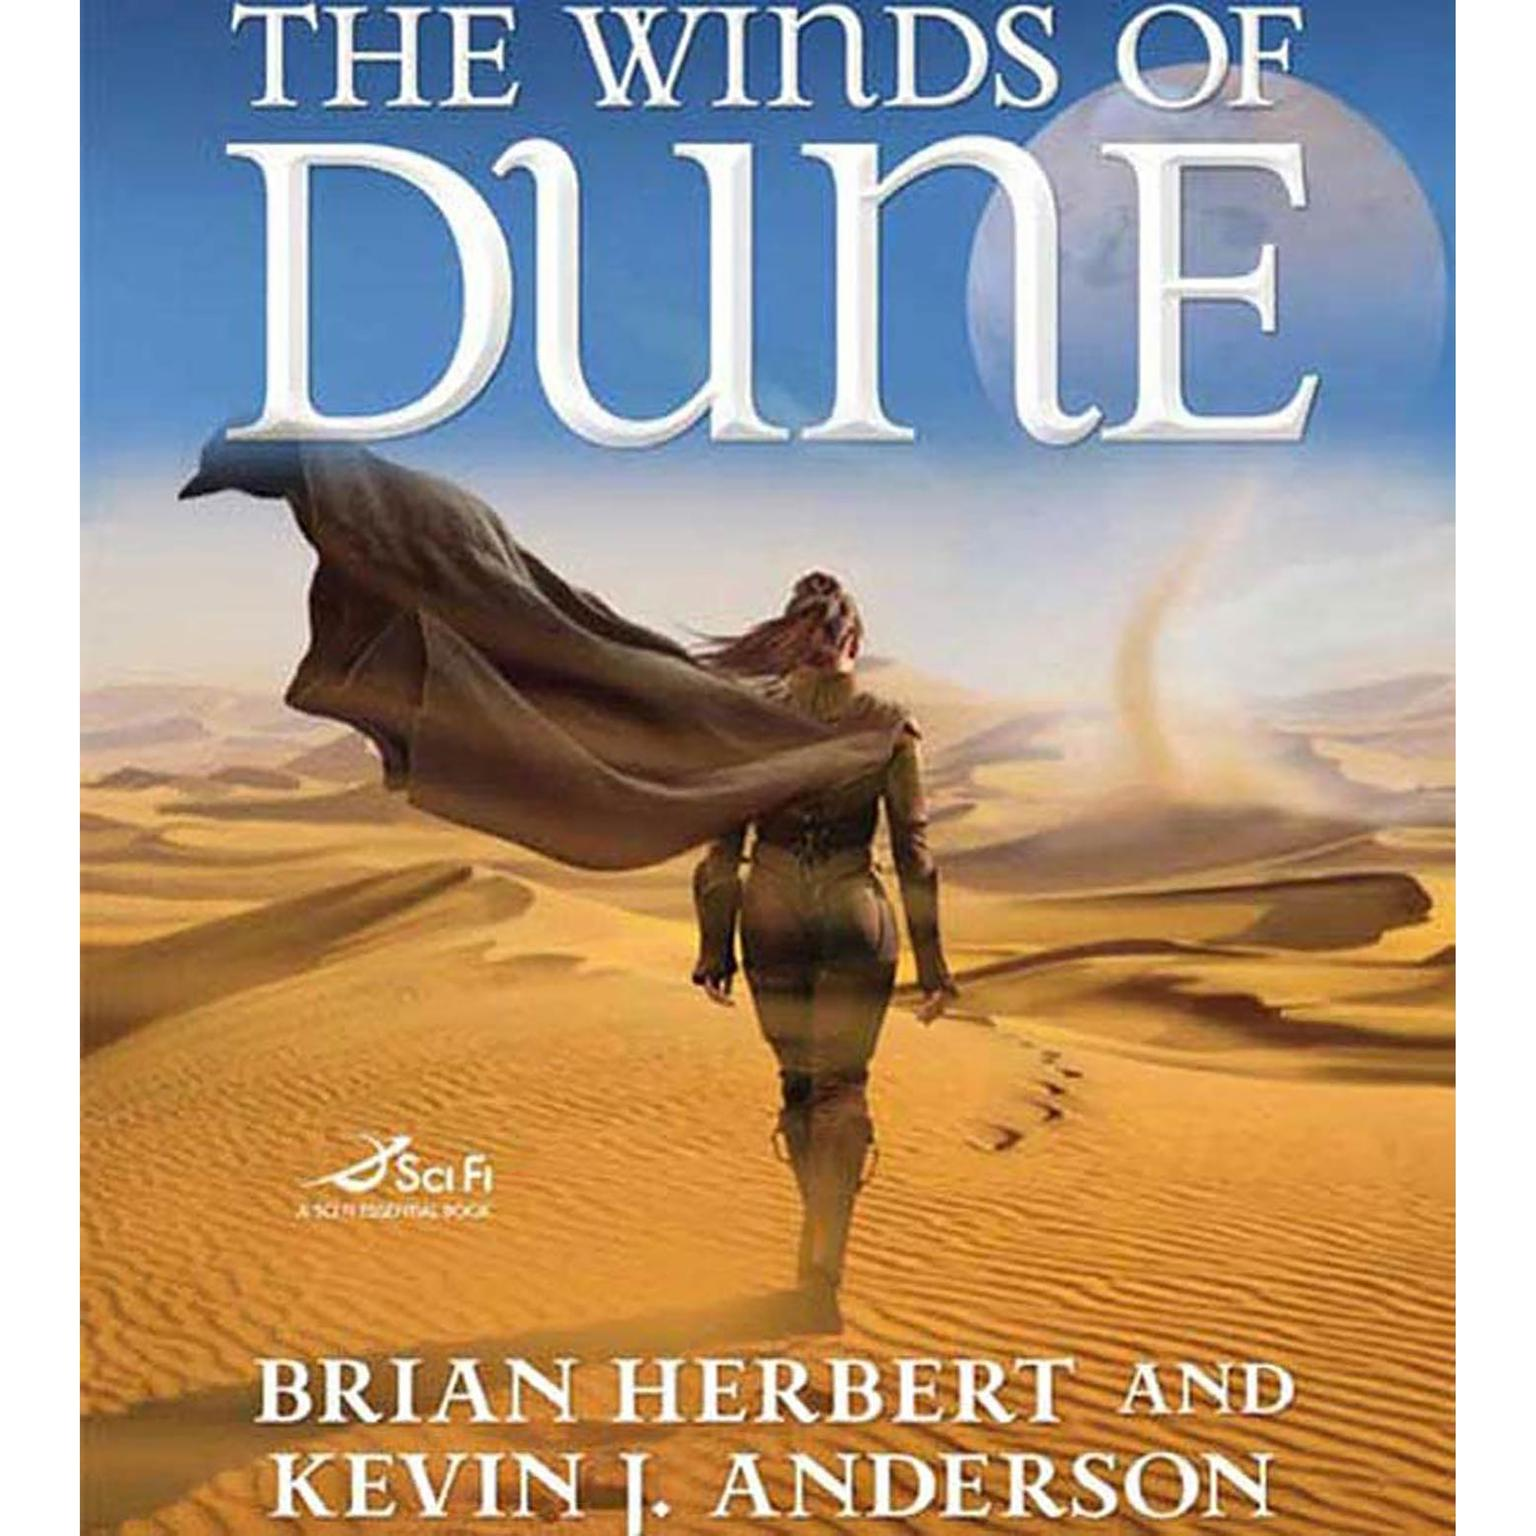 Printable The Winds of Dune Audiobook Cover Art